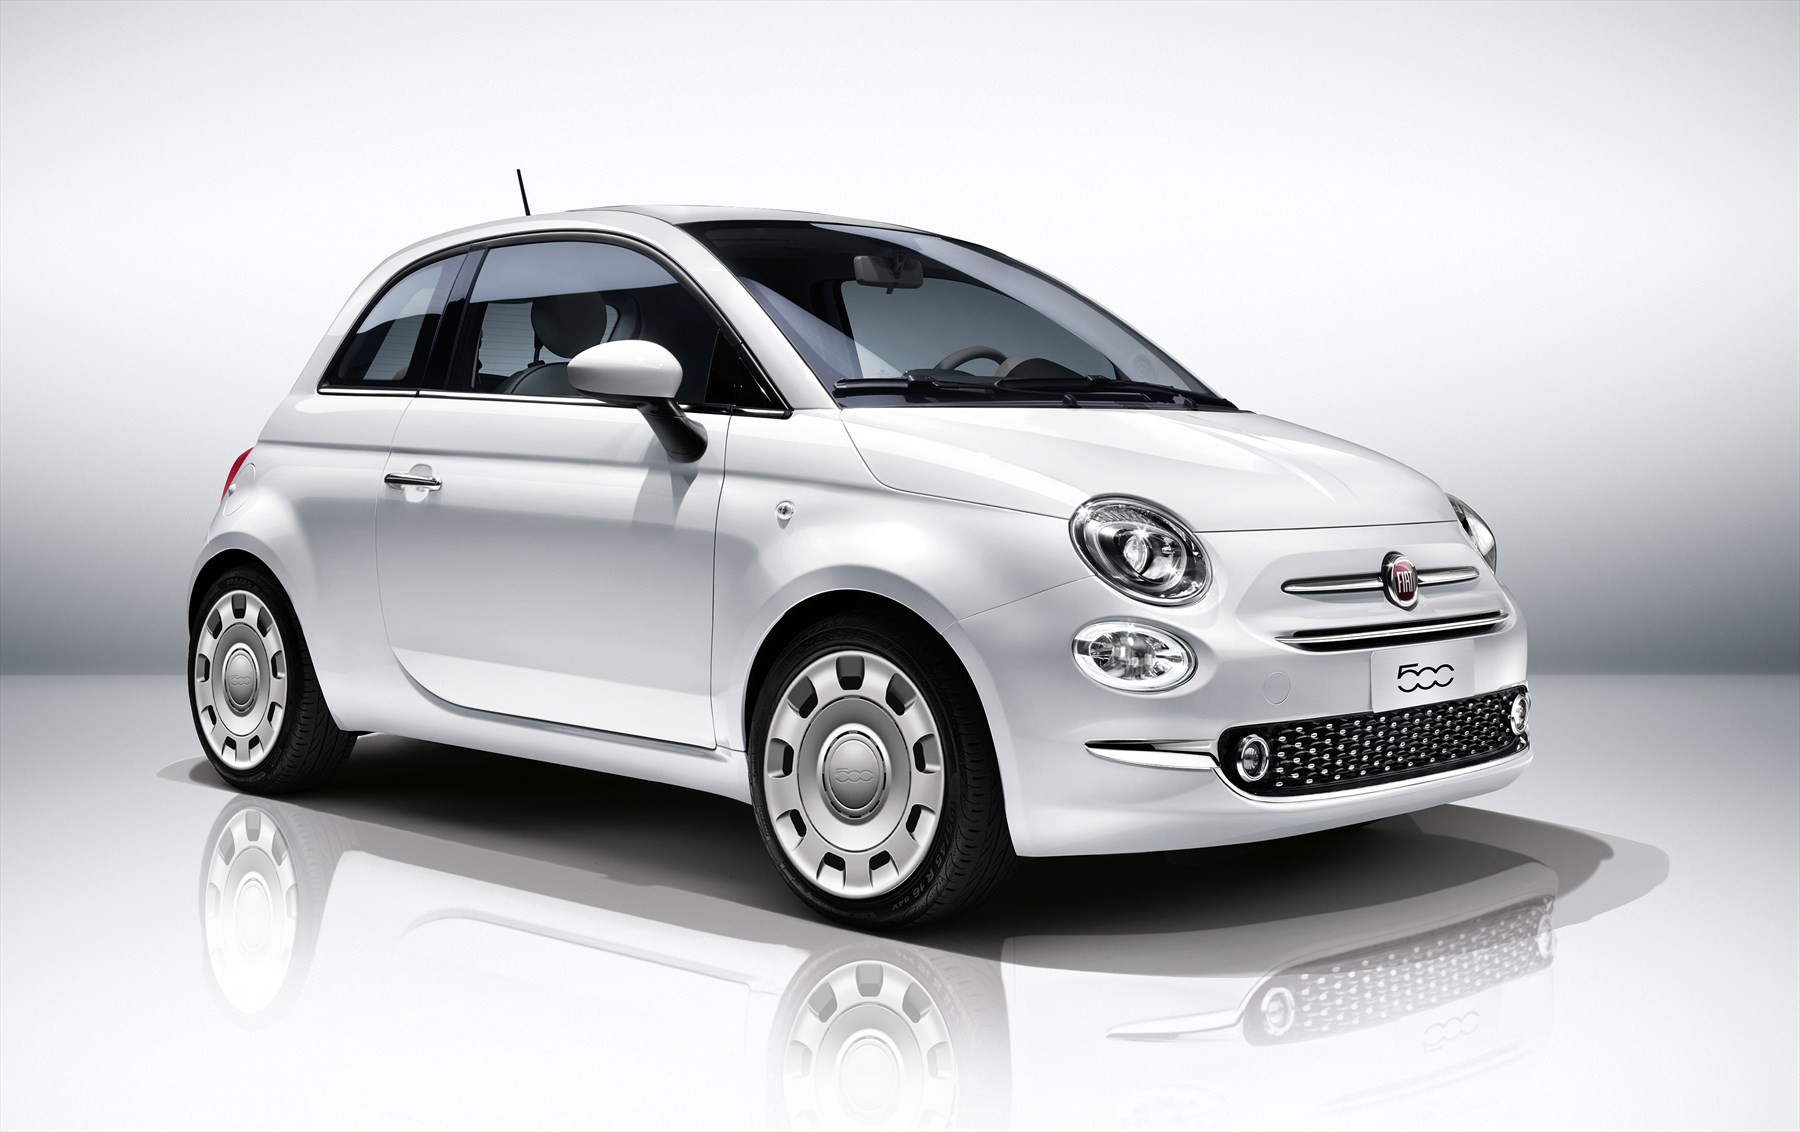 new fiat 500 hits south african shores barloworld motor retail